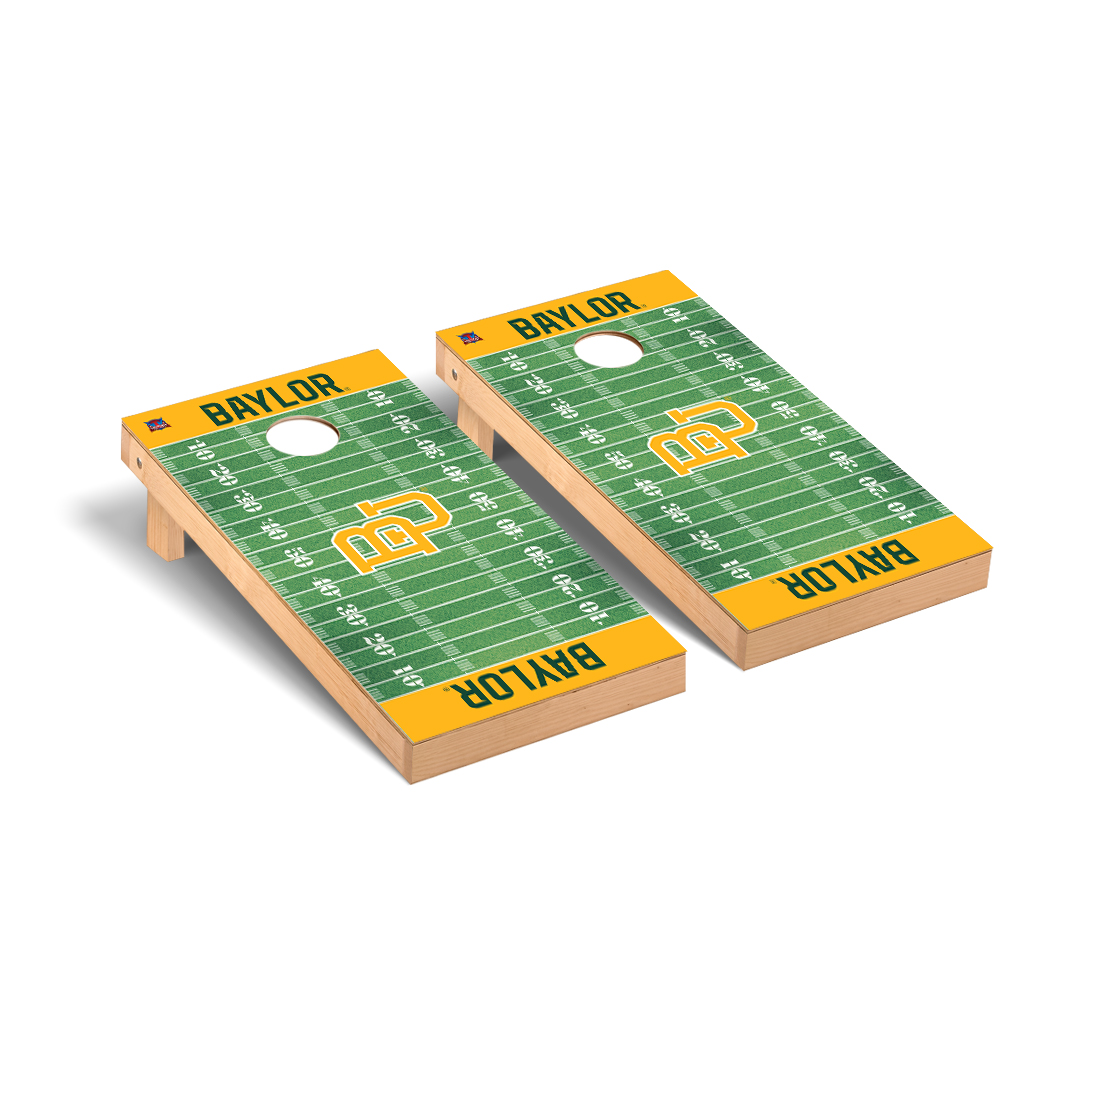 Baylor Bears Cornhole Game Set Football Field Version